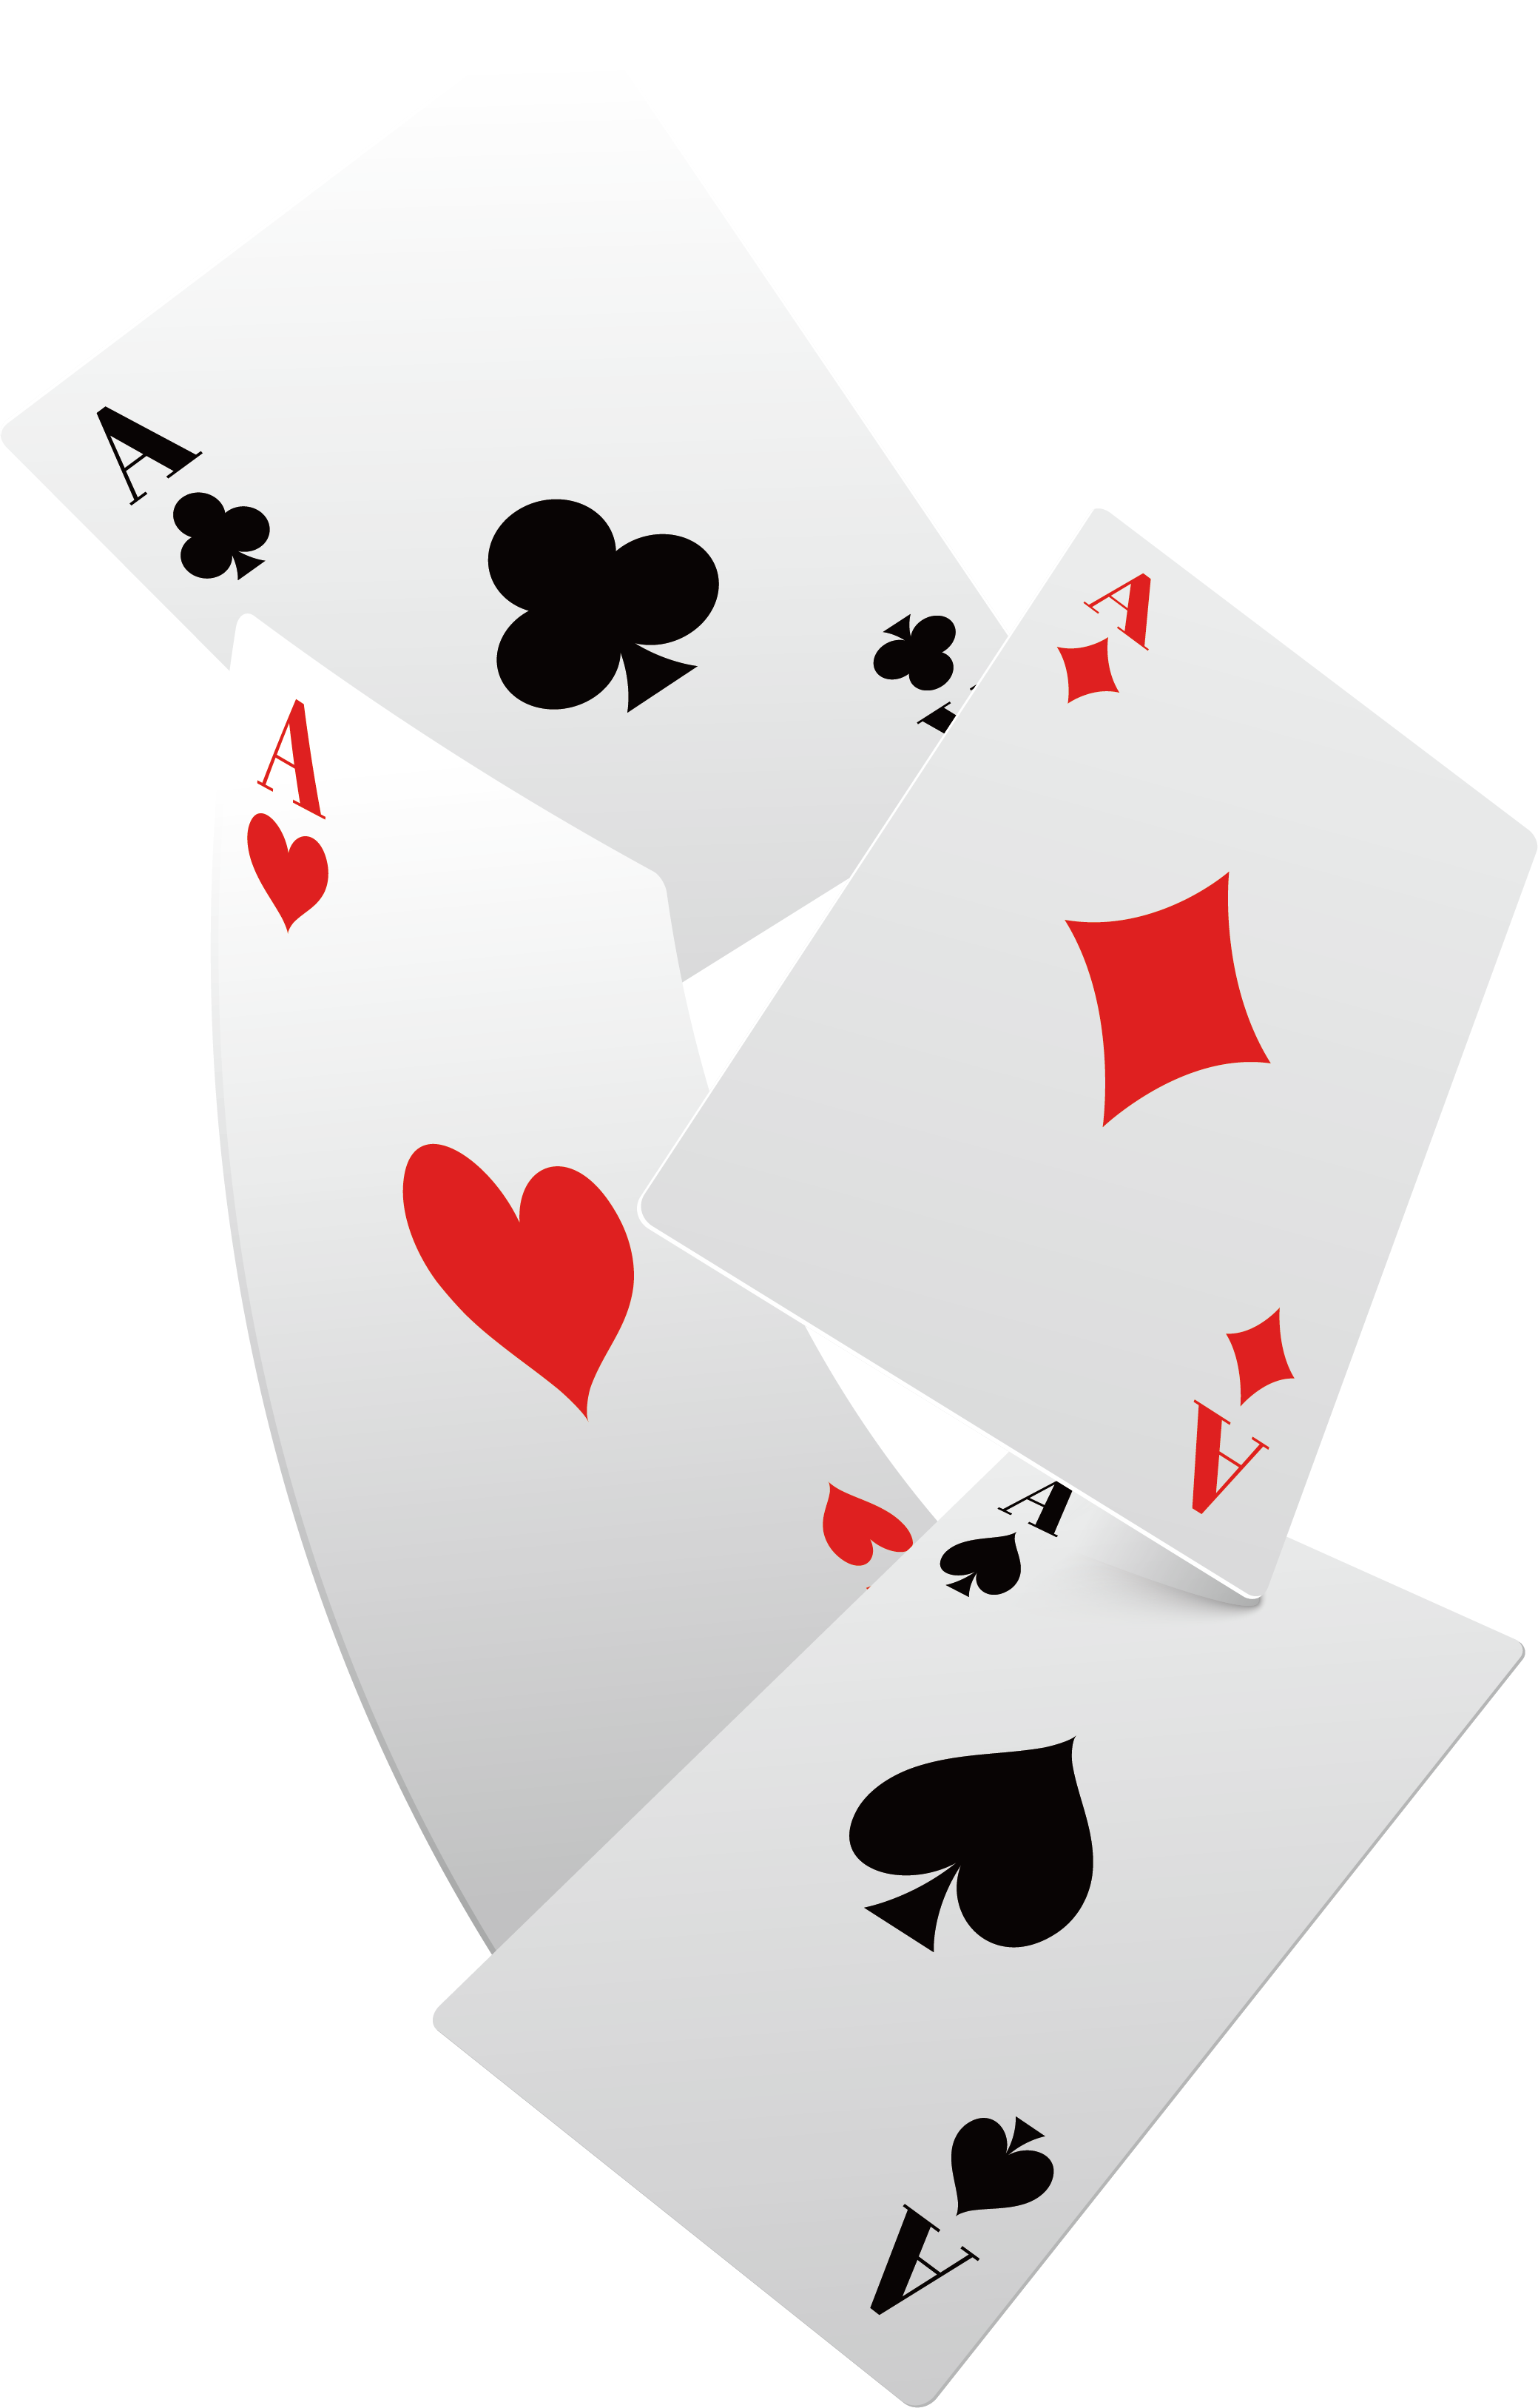 clipart freeuse library Cassino Blackjack Casino Playing card Poker